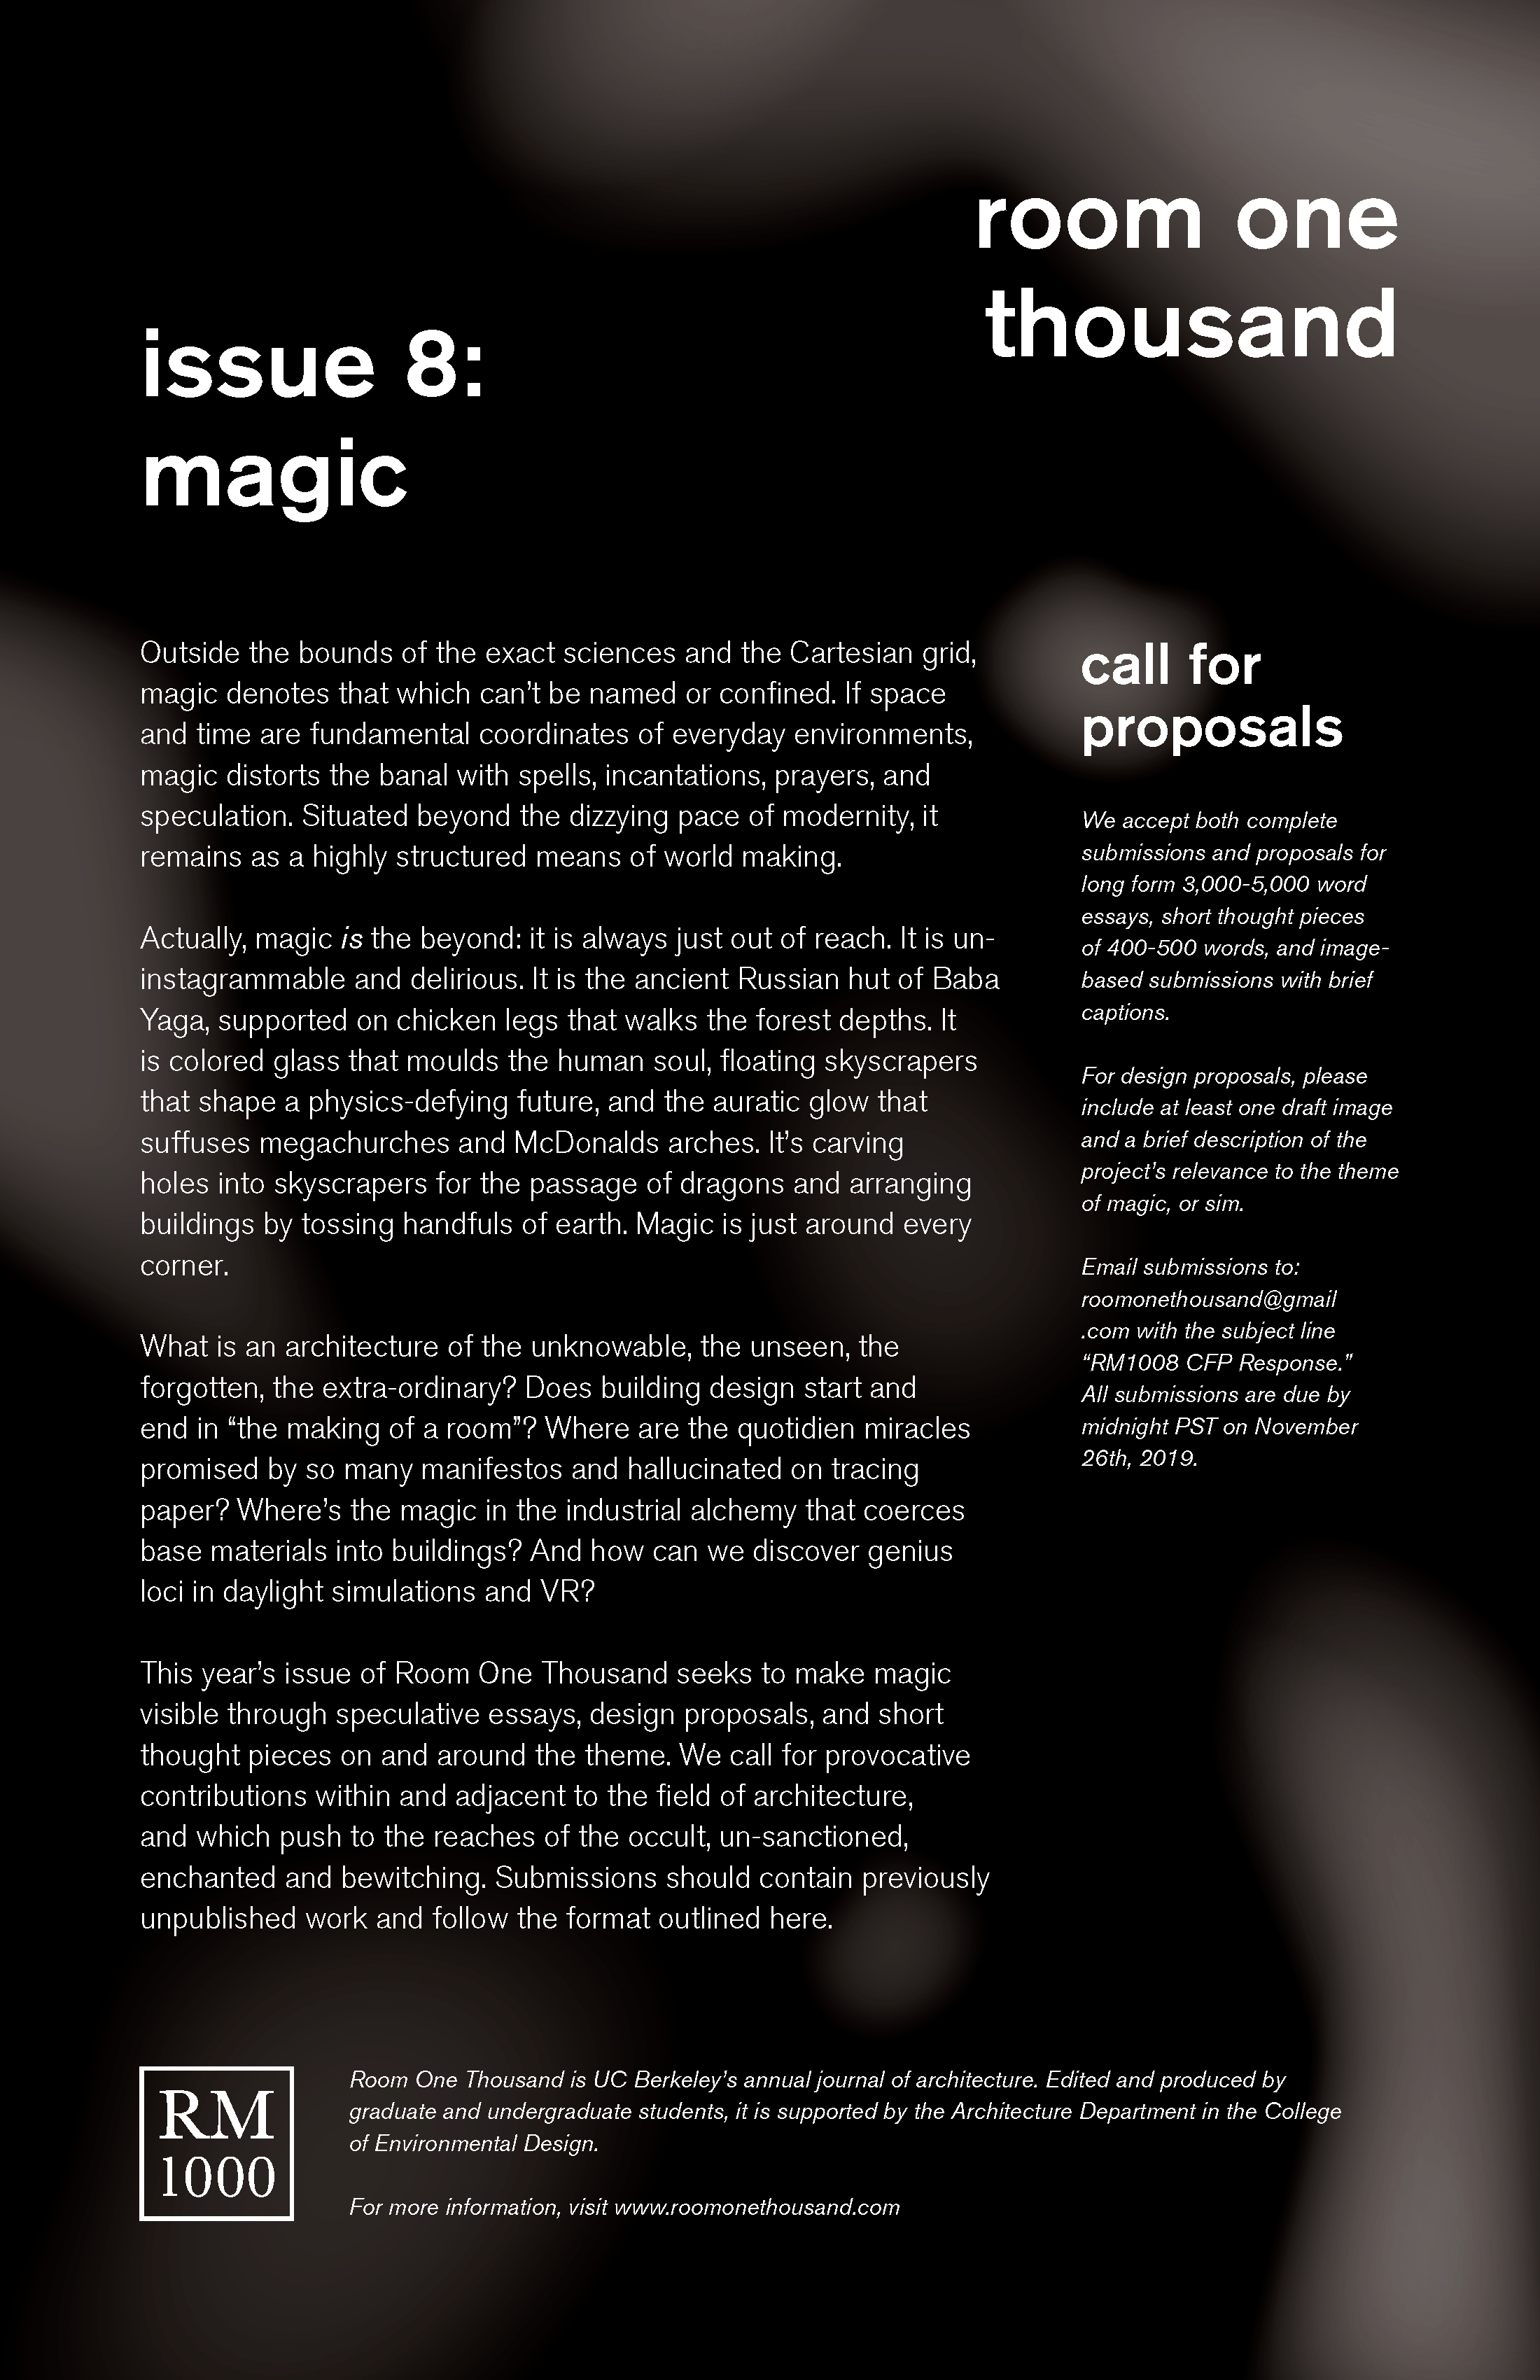 "Magic - Issue 8: Call For ProposalsOutside the bounds of the exact sciences and the Cartesian grid, magic denotes that which can't be named or confined. If space and time are fundamental coordinates of everyday environments, magic distorts the banal with spells, incantations, prayers, and speculation. Situated beyond the dizzying pace of modernity, it remains as a highly structured means of world making.Actually, magic is the beyond: it is always just out of reach. It is un-instagrammable and delirious. It is the ancient Russian hut of Baba Yaga, supported on chicken legs that walks the forest depths. It is colored glass that moulds the human soul, floating skyscrapers that shape a physics-defying future, and the auratic glow that suffuses megachurches and McDonalds arches. It's carving holes into skyscrapers for the passage of dragons and arranging buildings by tossing handfuls of earth. Magic is just around every corner.What is an architecture of the unknowable, the unseen, the forgotten, the extra-ordinary? Does building design start and end in ""the making of a room""? Where are the quotidien miracles promised by so many manifestos and hallucinated on tracing paper? Where's the magic in the industrial alchemy that coerces base materials into buildings? And how can we discover genius loci in daylight simulations and VR?This year's issue of Room One Thousand seeks to make magic visible through speculative essays, design proposals, and short thought pieces on and around the theme. We call for provocative contributions within and adjacent to the field of architecture, and which push to the reaches of the occult, un-sanctioned, enchanted and bewitching. Submissions should contain previously unpublished work and follow the format outlined here.Submission Information:~ We accept both complete submissions and proposals for long form 3,000-5,000 word essays, short thought pieces of 400-500 words, and image- based submissions with brief captions.~ For design proposals, please include at least one draft image and a brief description of the project's relevance to the theme of magic, or sim.Email submissions to: roomonethousand@gmail.com with the subject line ""RM1008 CFP Response."" All submissions are due by midnight PST on November 26th, 2019."